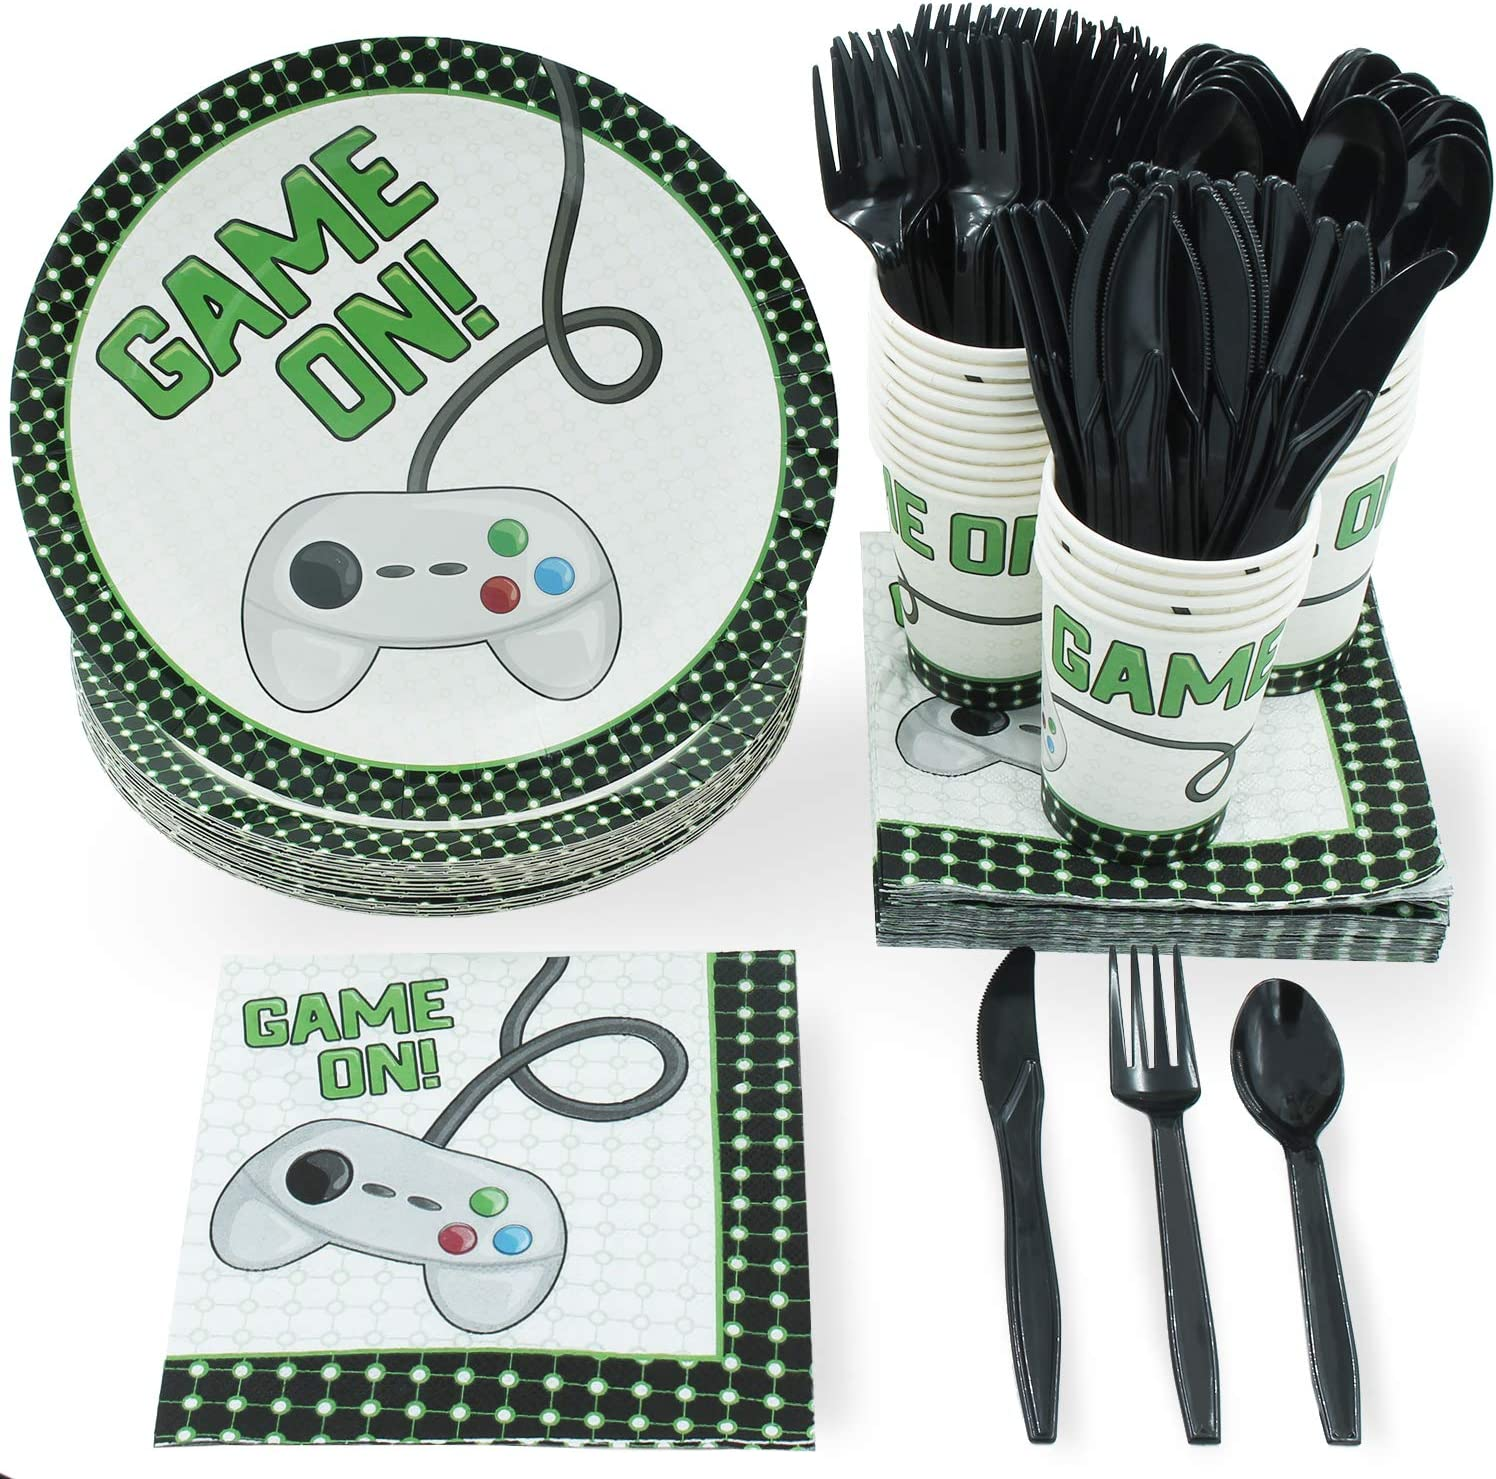 Vintage Video Game Party Bundle, Includes Plates, Napkins, Cups, and Cutlery (24 Guests,144 Pieces)